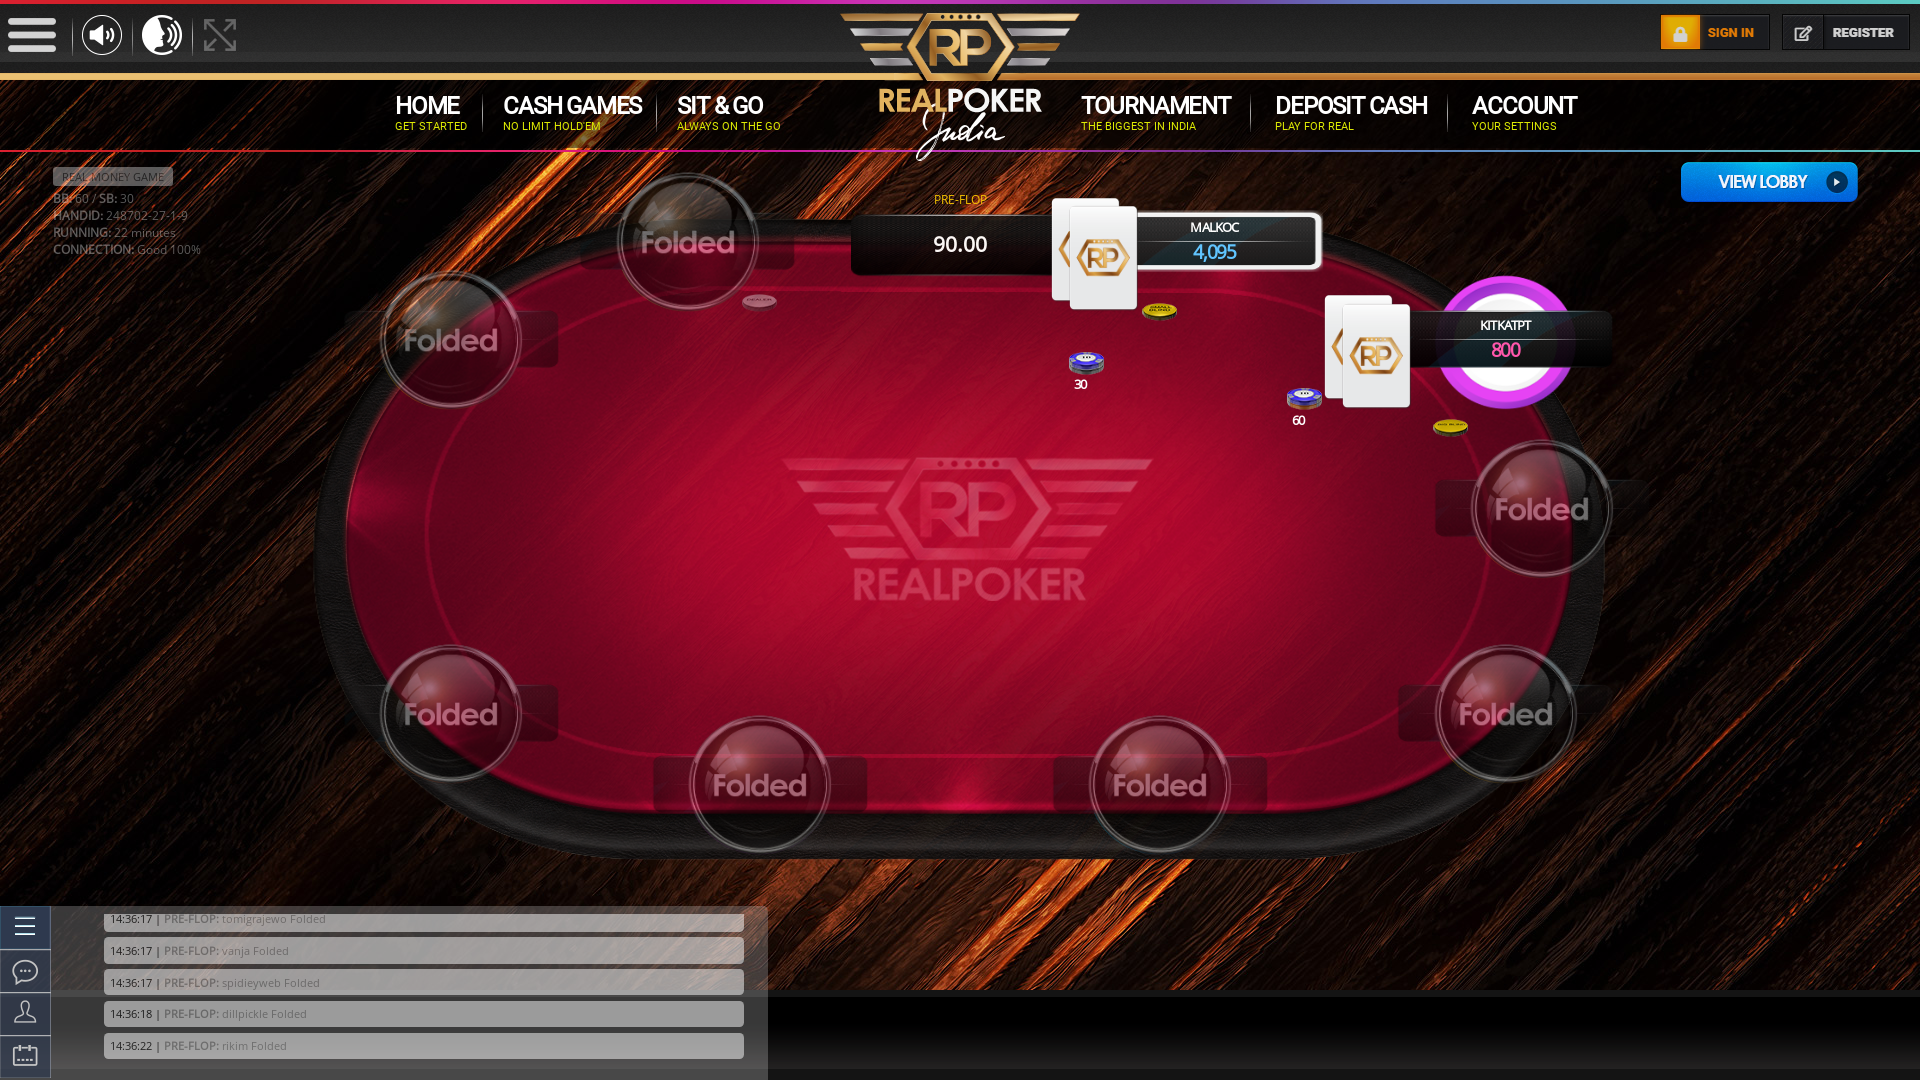 The 27th hand dealt between rikim, dillpickle, mariya, assim, spidieyweb, tomigrajewo, kitkatpt, malkoc, vanja,  on poker india